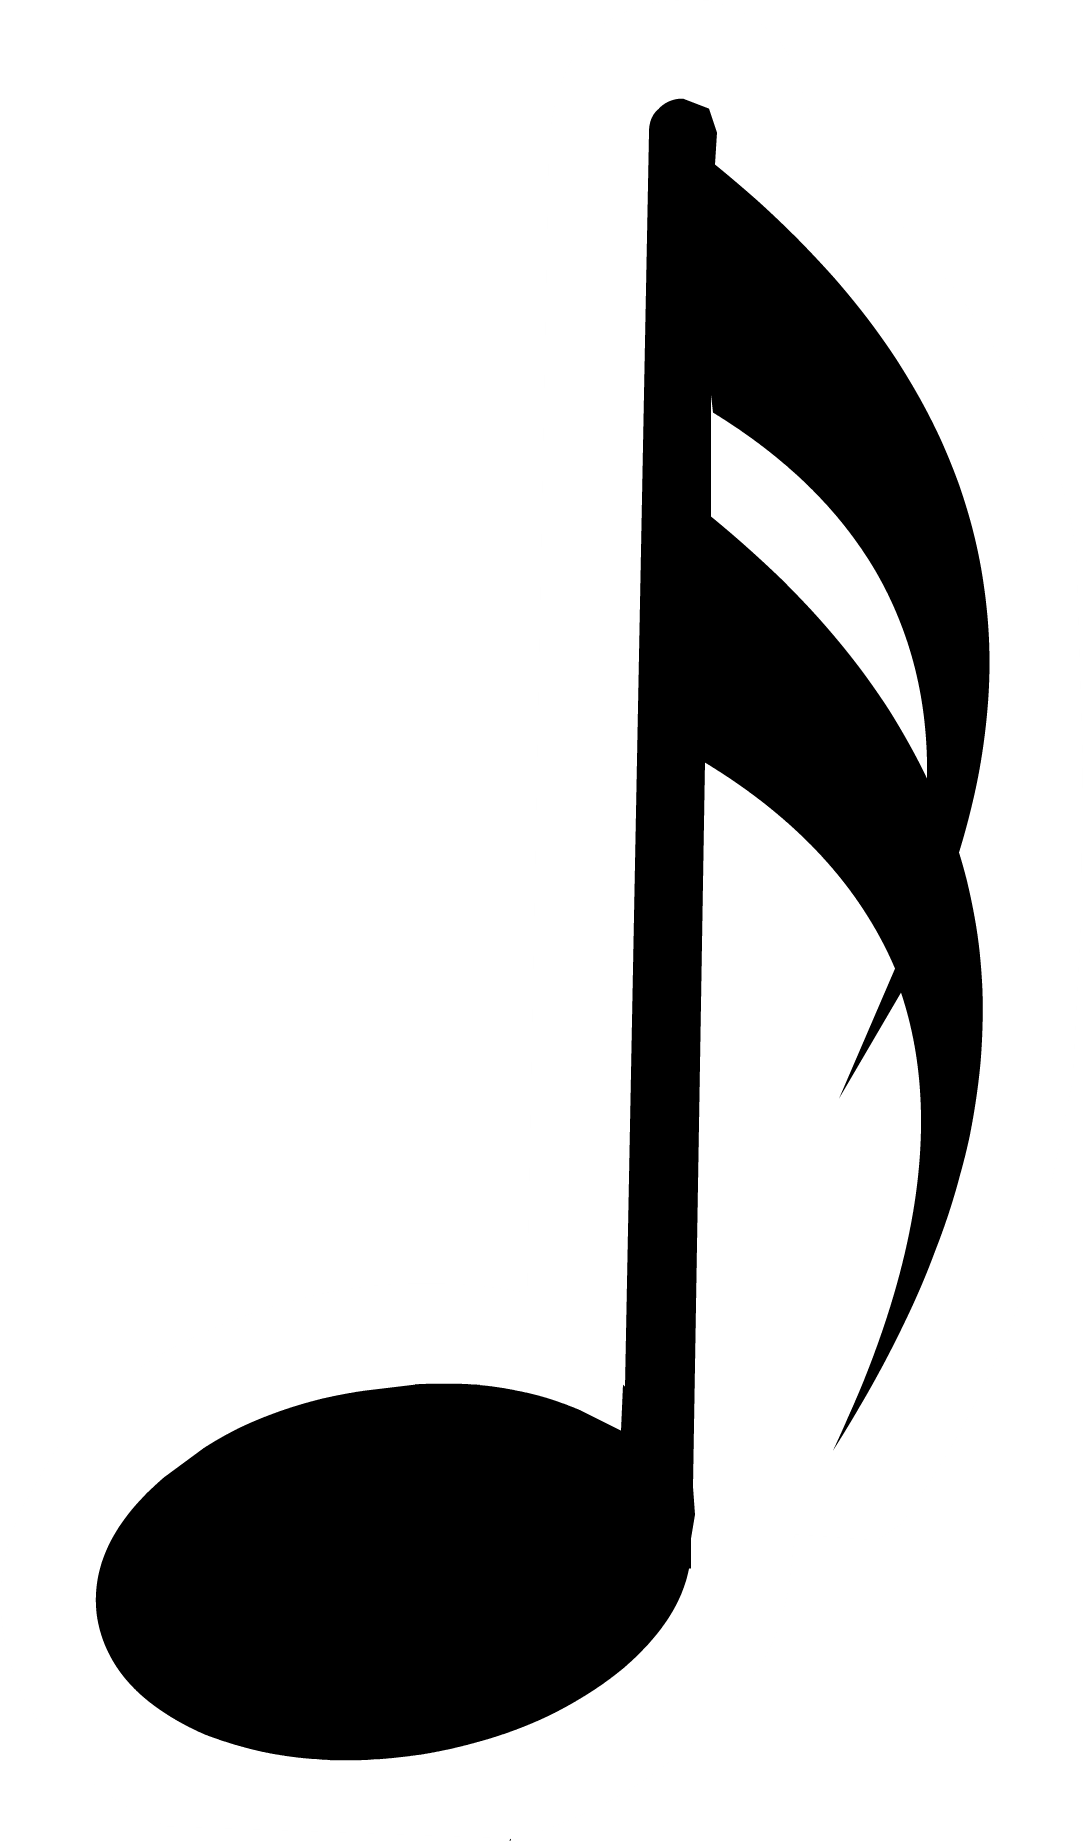 Emoticon musical notes png. Image music note pin